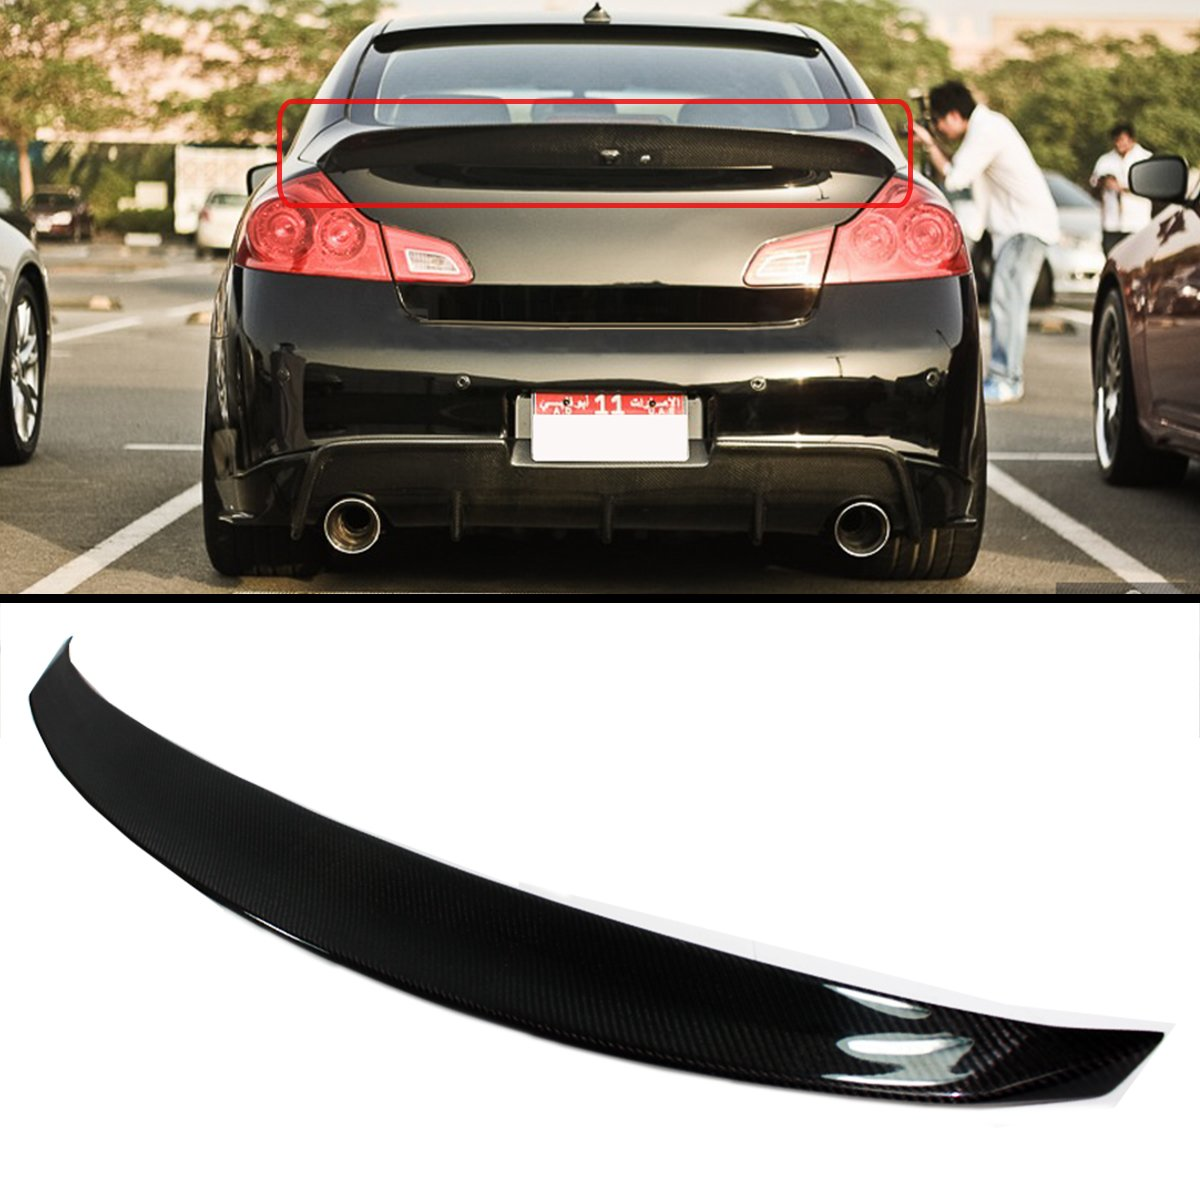 Cuztom Tuning Fits for 2007-15 G35 G37 Q40 Sedan Carbon Fiber JDM Duckbill  Highkick Style Rear Trunk Spoiler